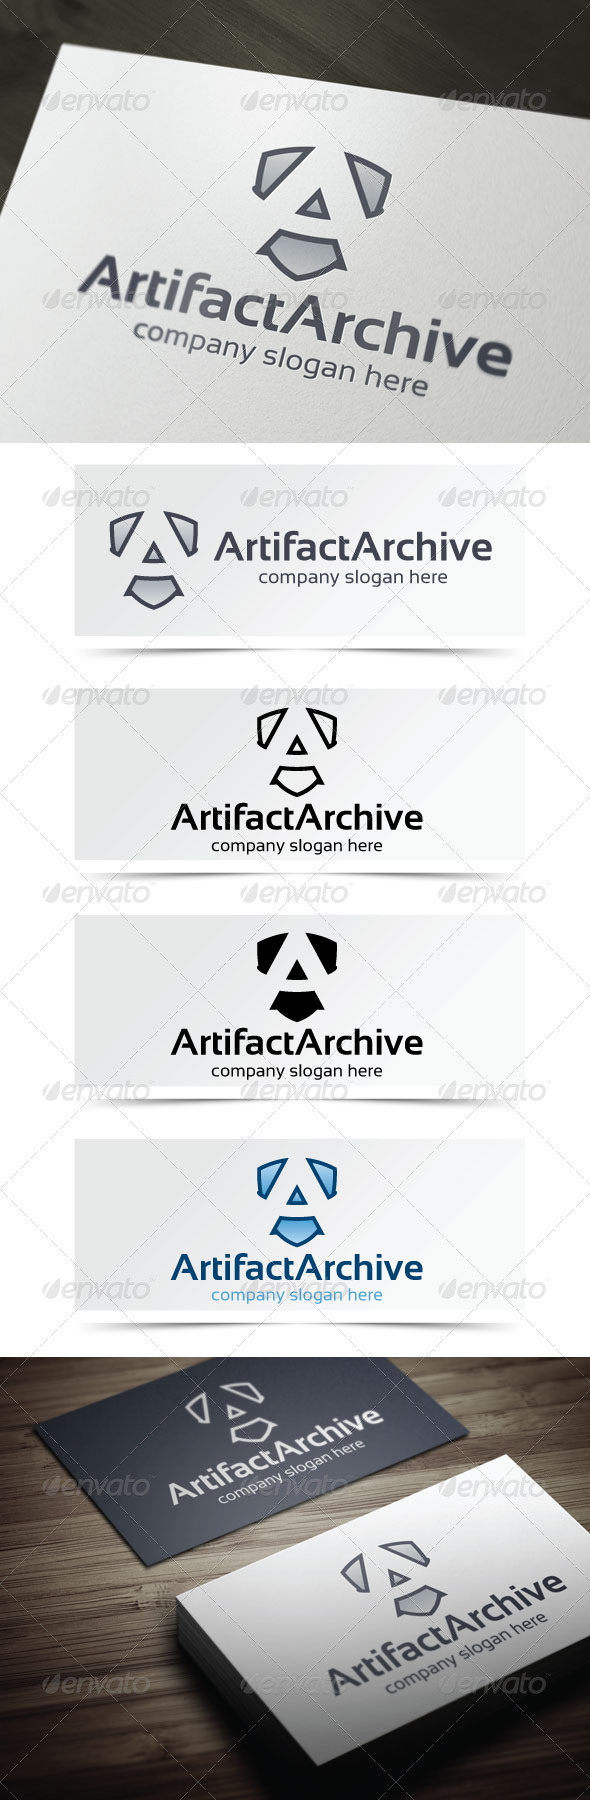 GraphicRiver Artifact Archive 4640605